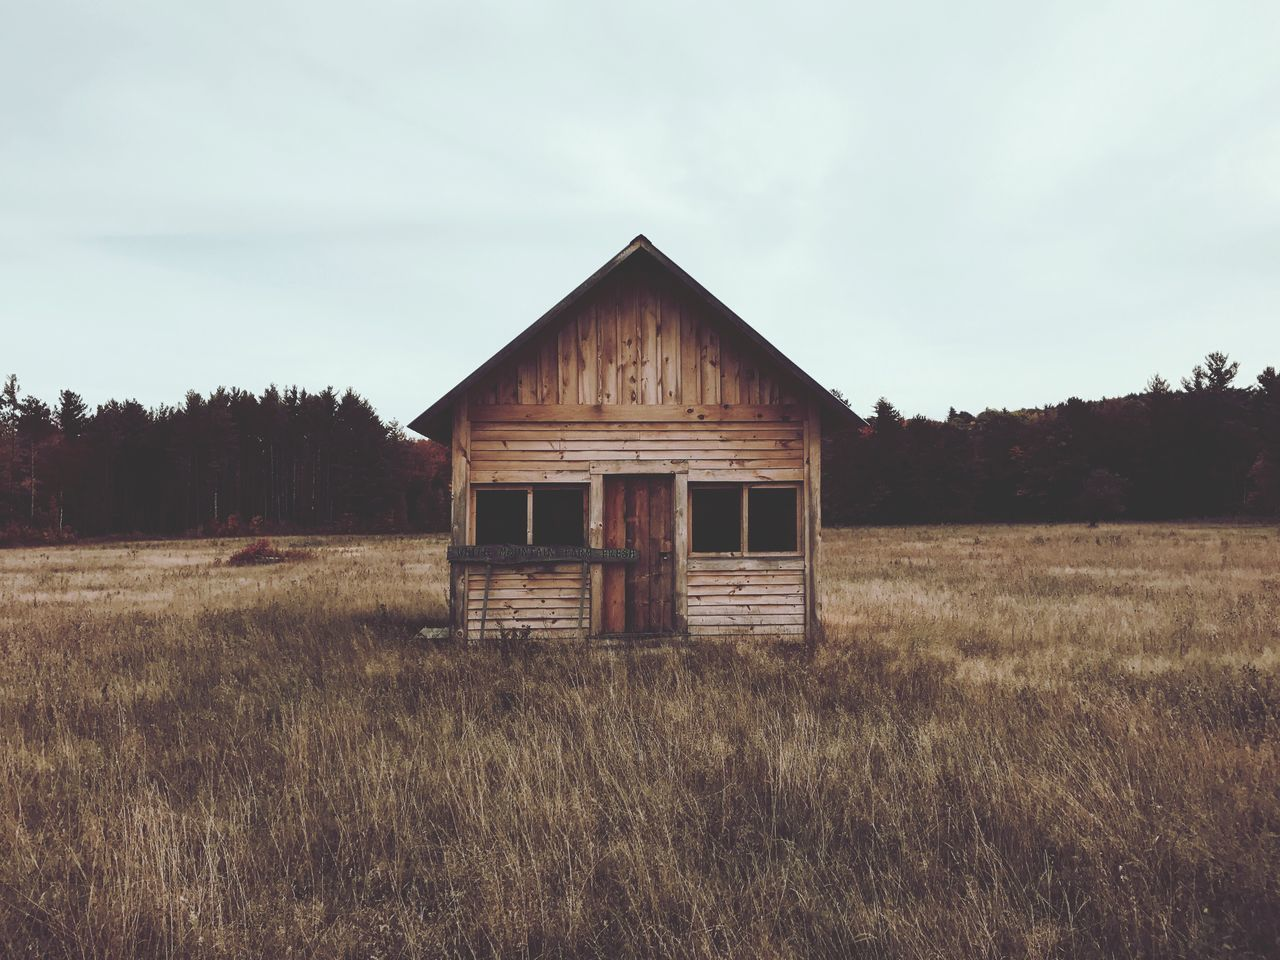 Fall house Grass Architecture Built Structure Field House Grassy Building Exterior Landscape Sky Nature Non-urban Scene Growth Tranquil Scene Tranquility Outdoors Remote Day Weathered Scenics No People Wood